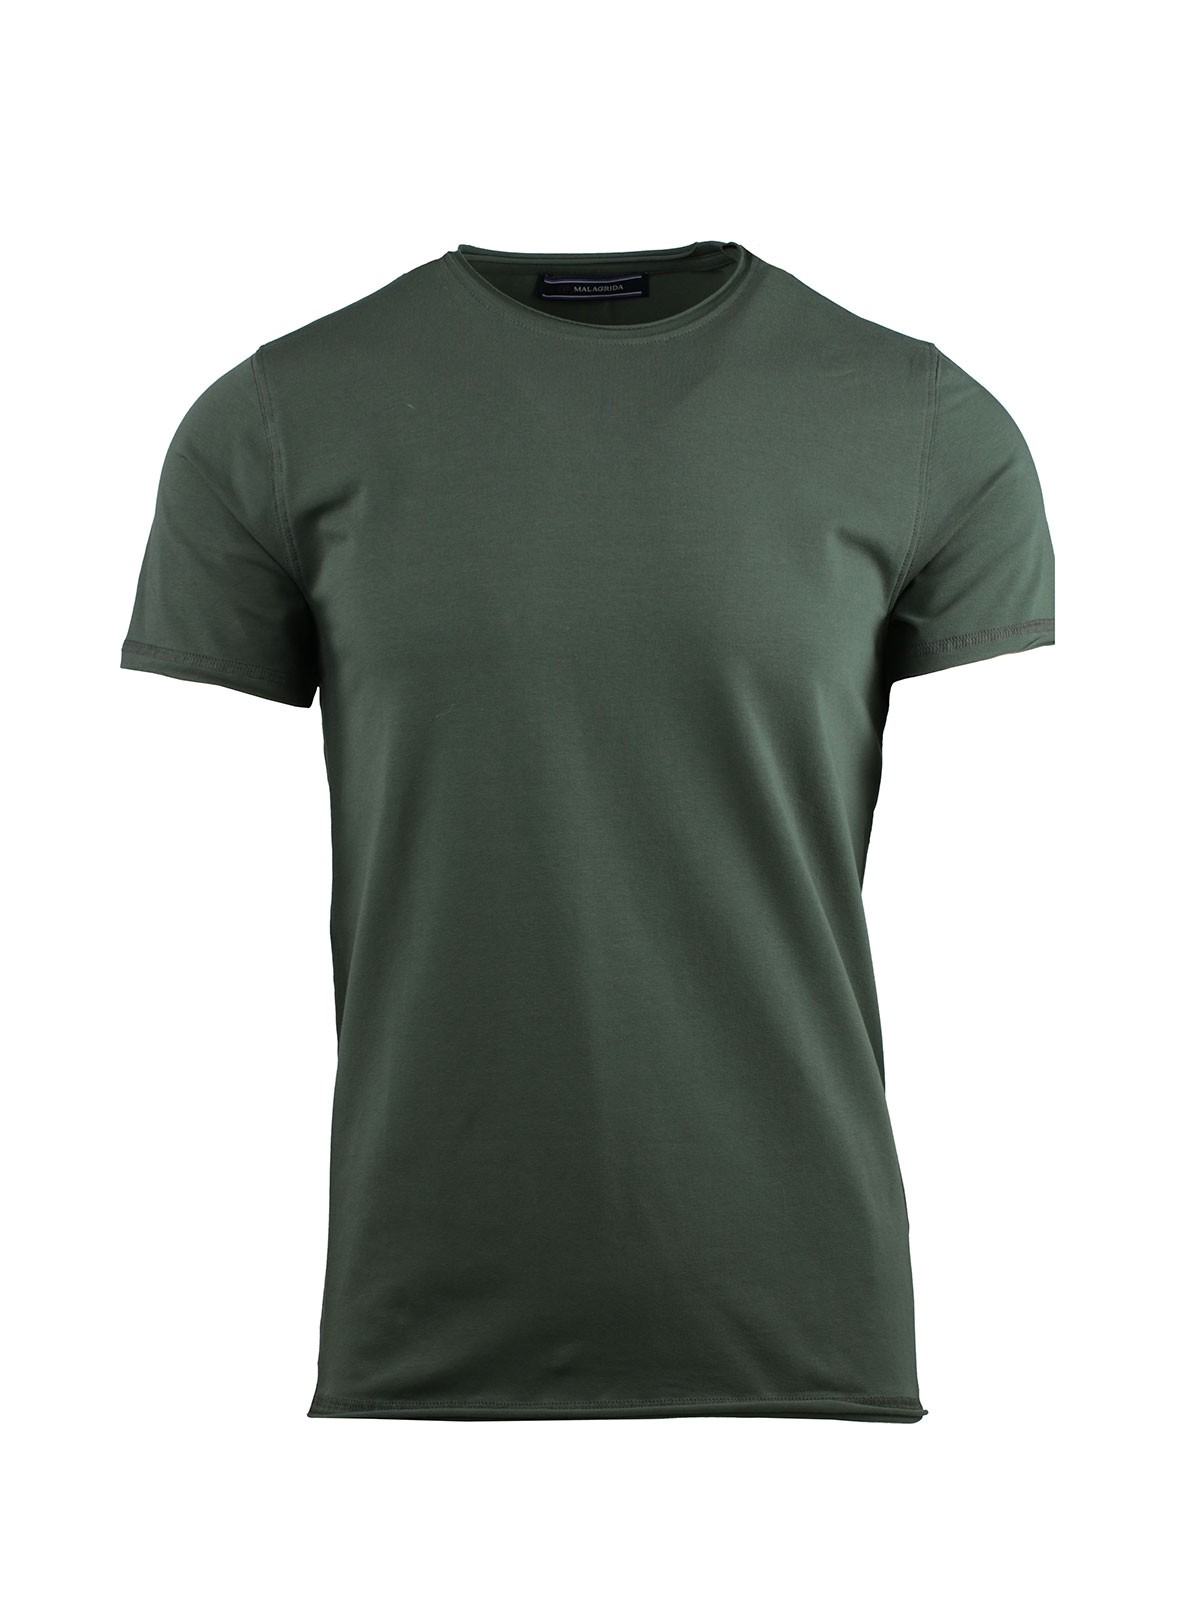 T-SHIRT IN STRETCHY JERSEY